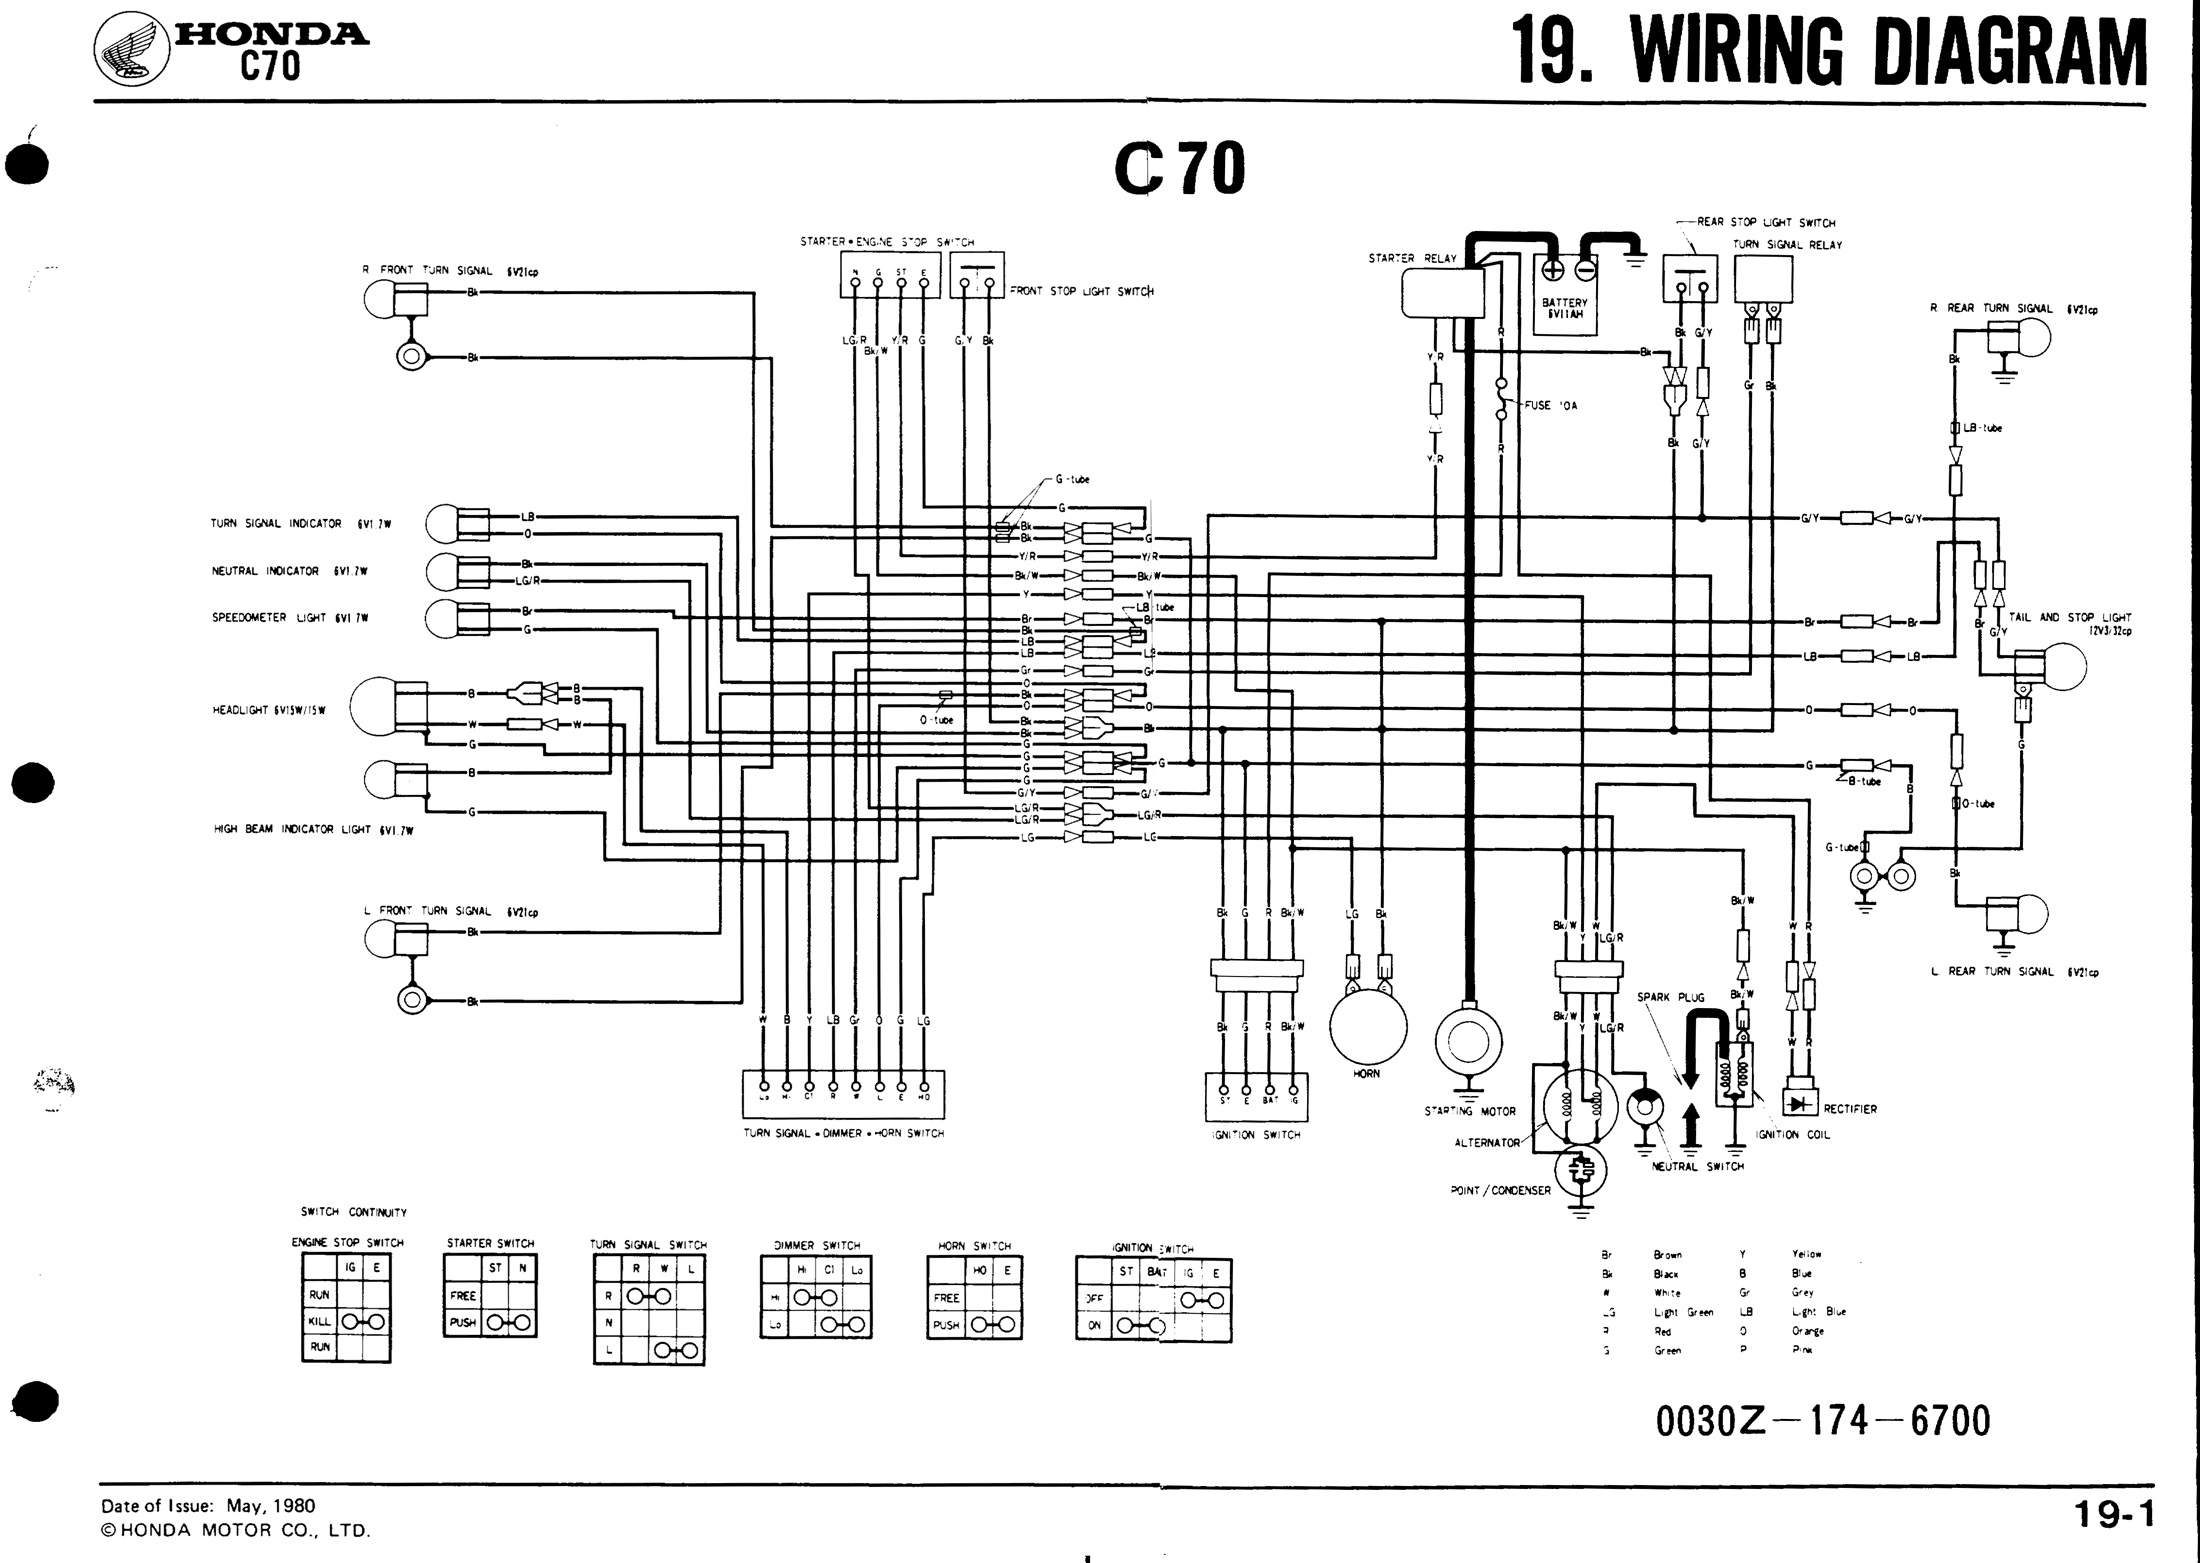 wiring_diagram_s diagram for honda c70 wiring wiring diagrams instruction c70 wiring diagram at alyssarenee.co